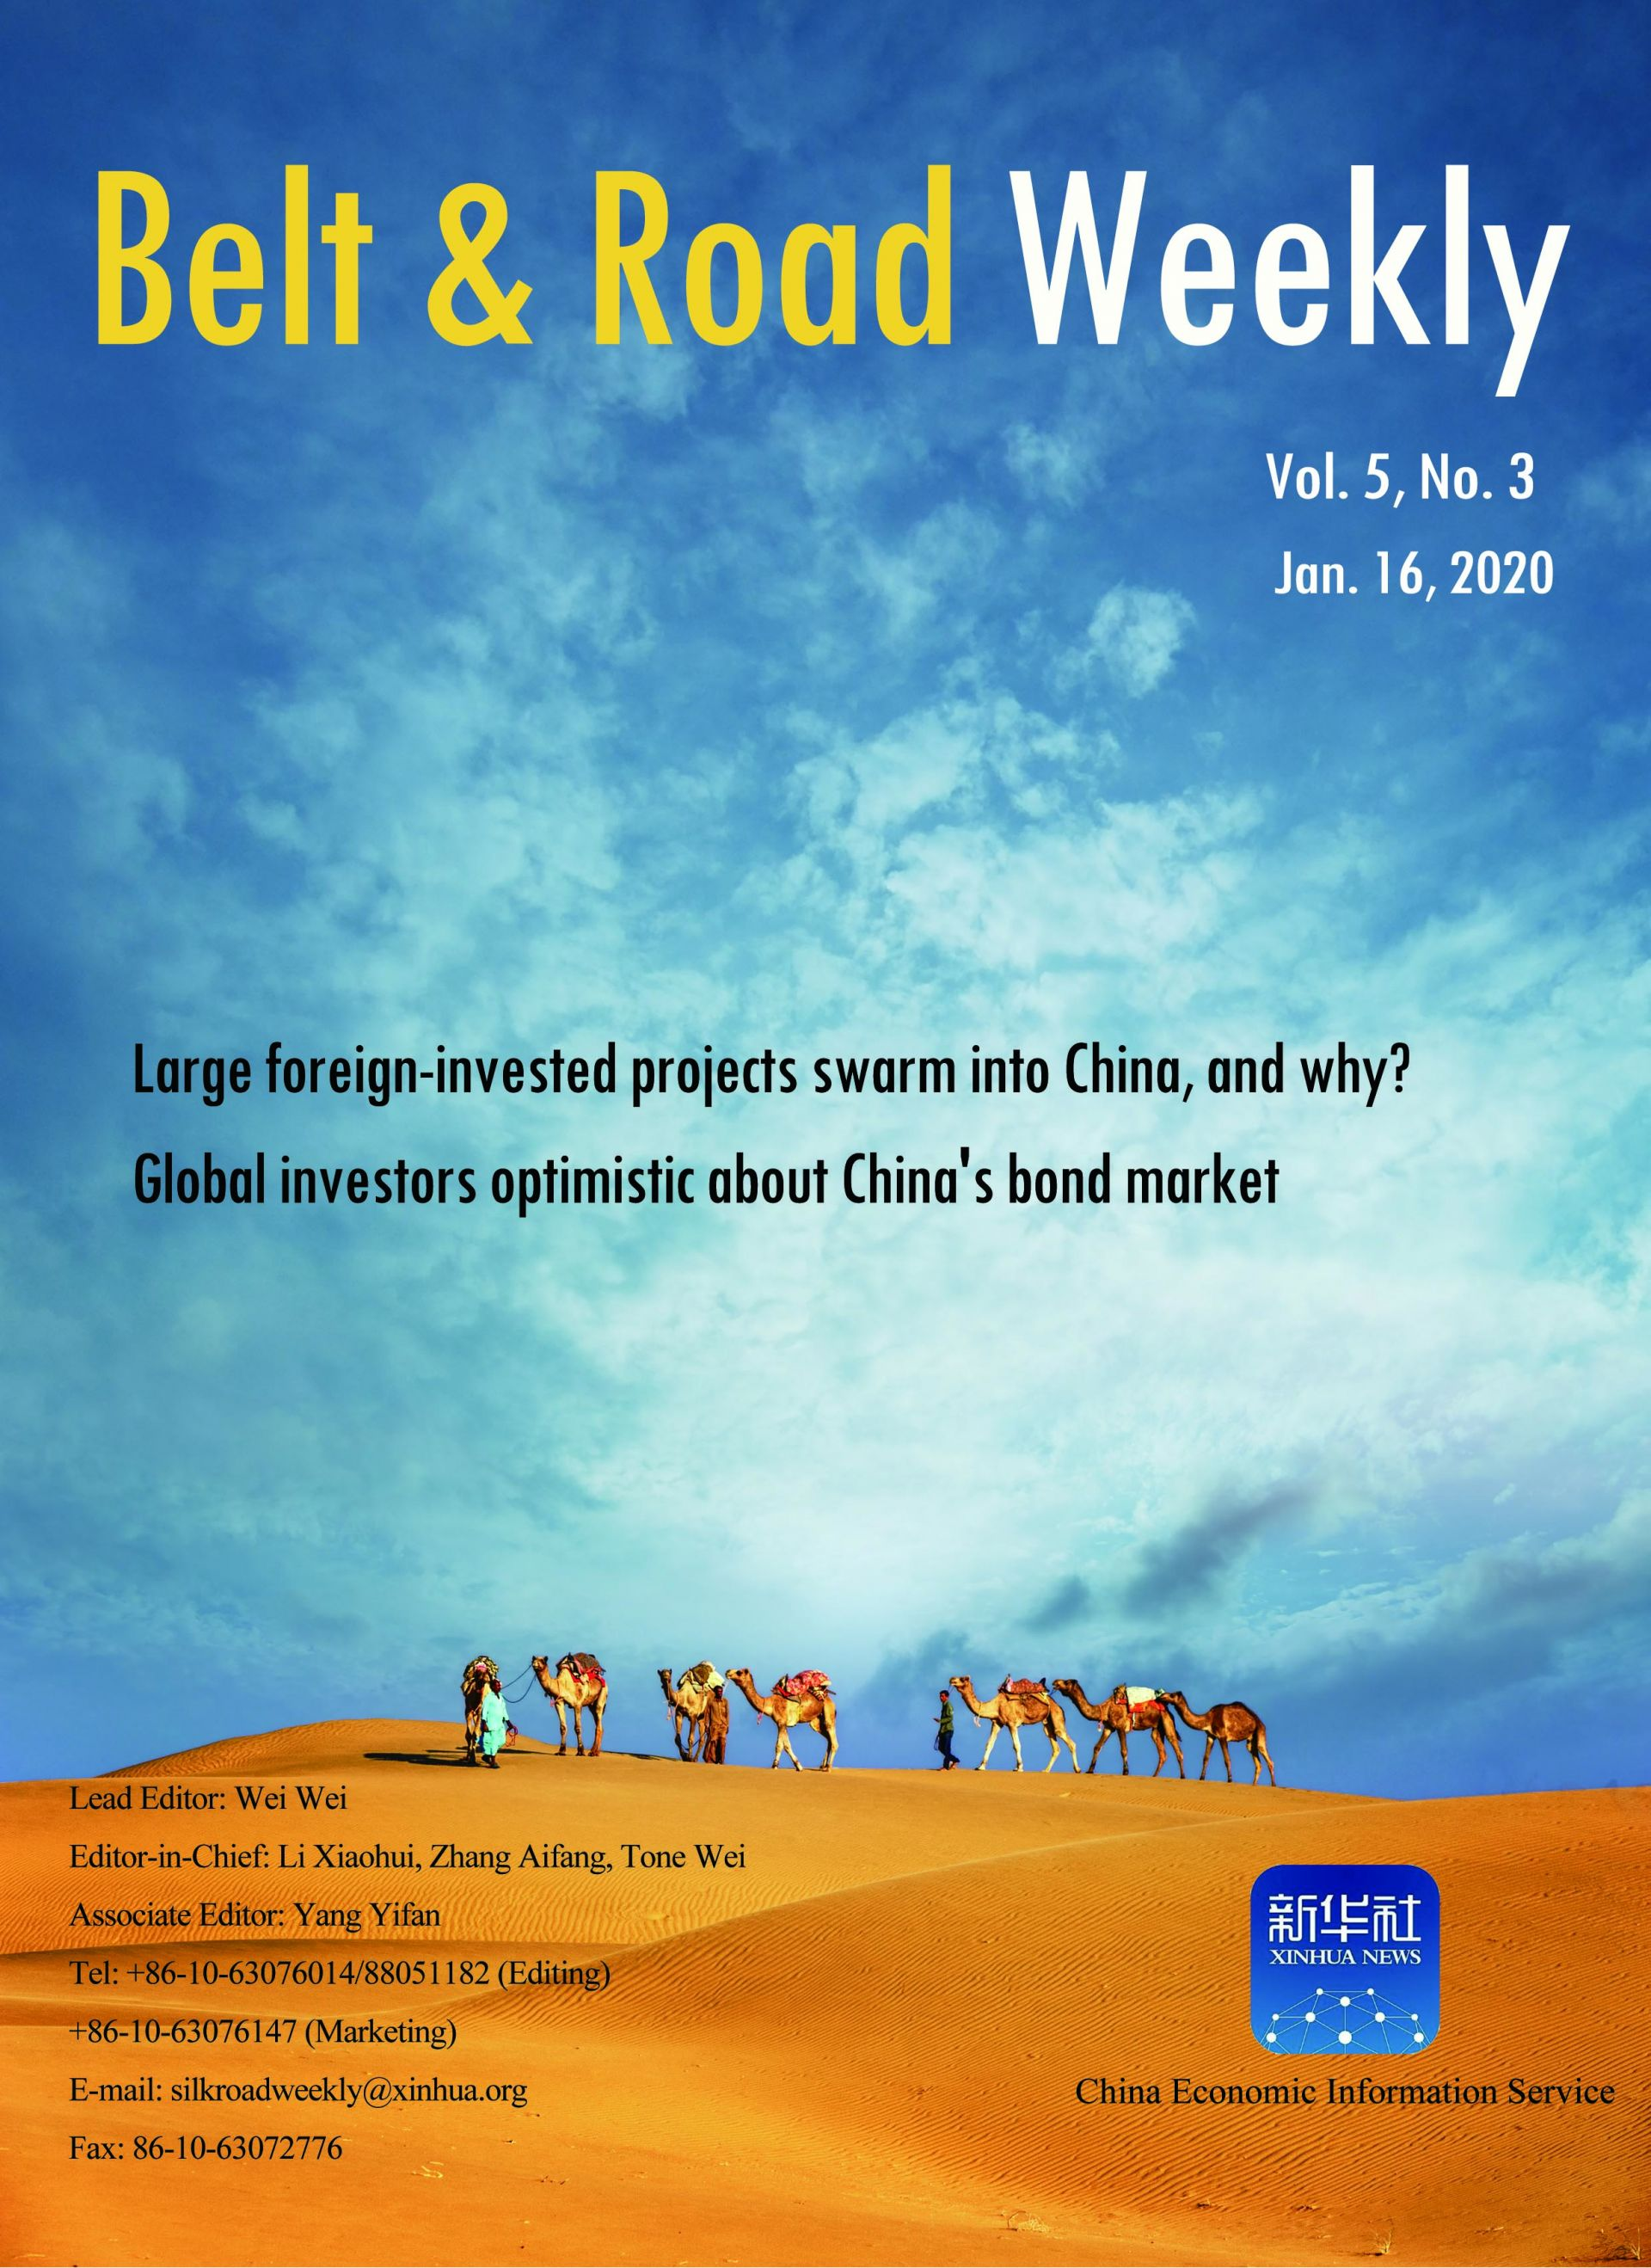 Belt & Road Weekly Vol. 5 No. 3